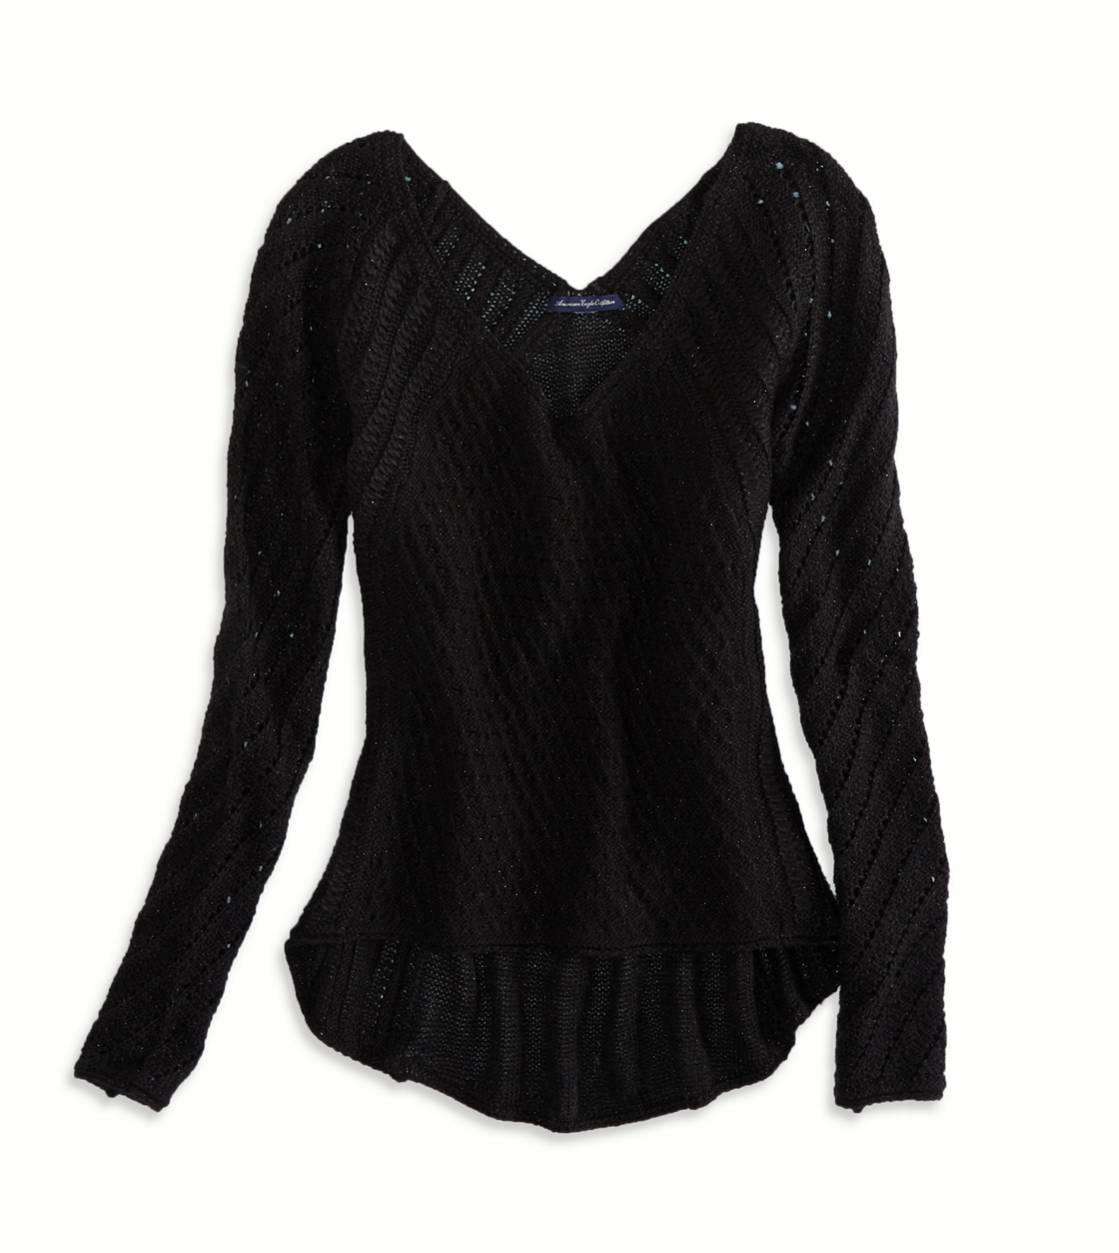 True Black AE Shimmer Sweater